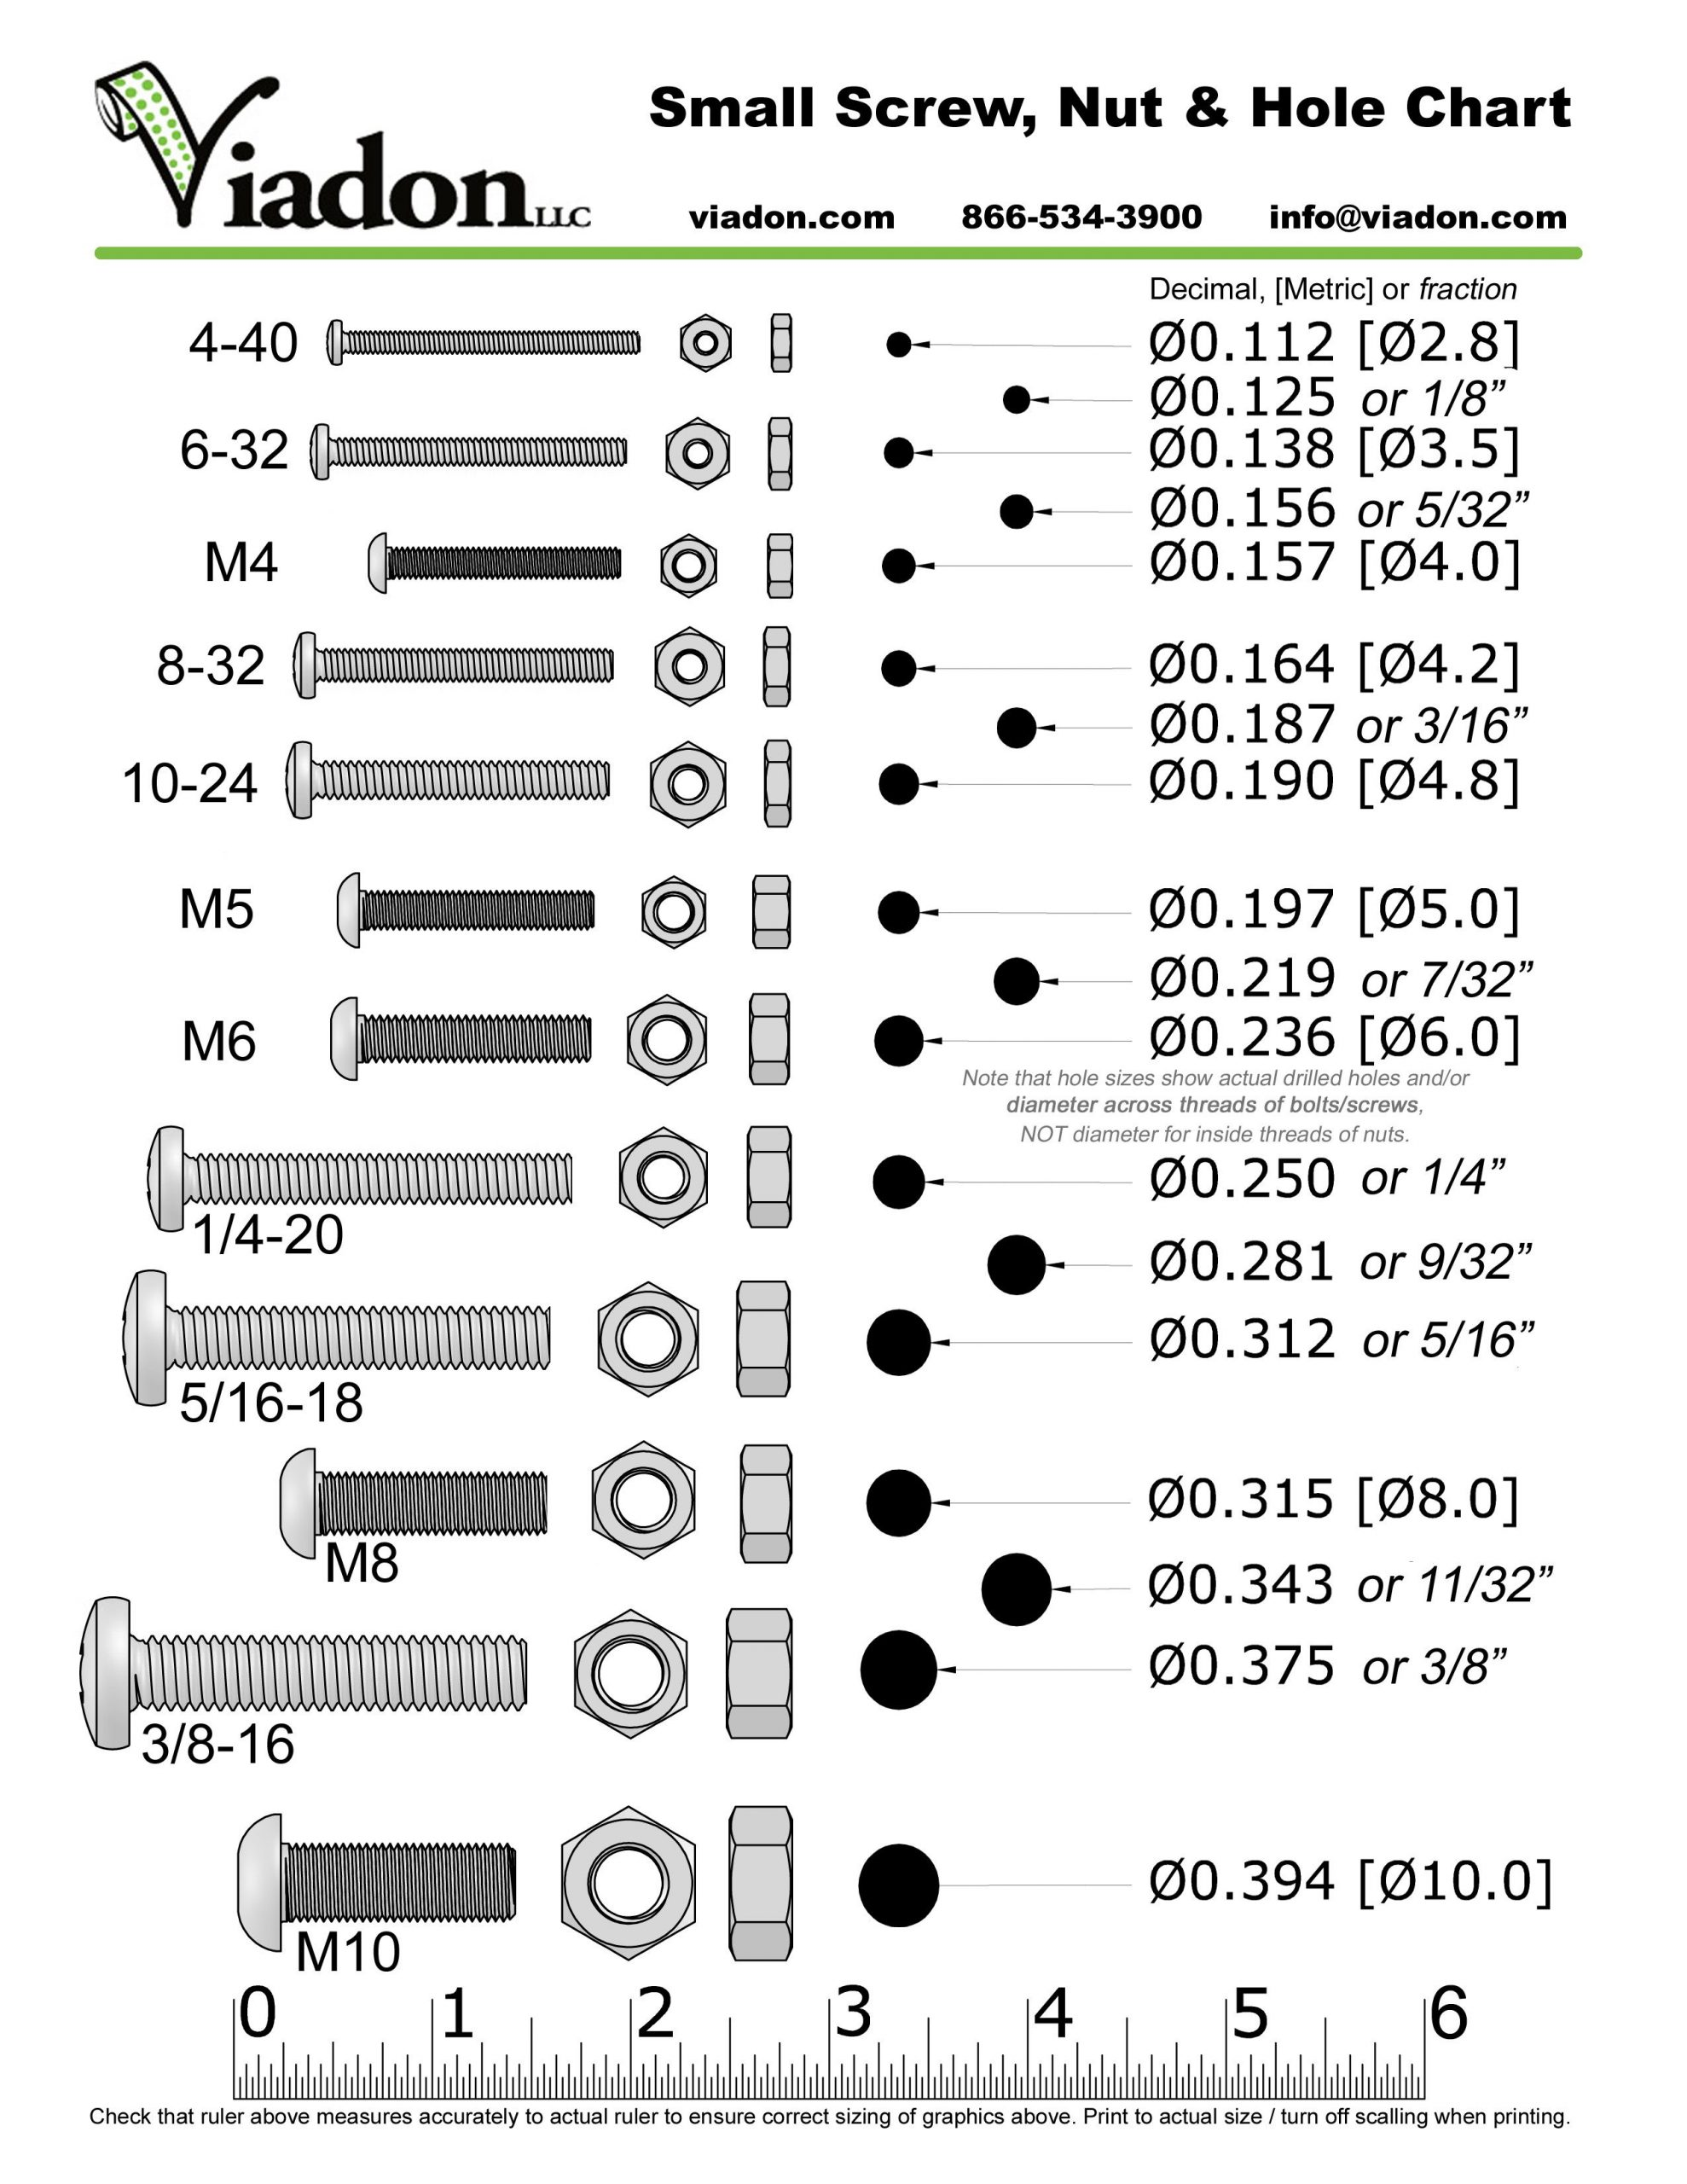 Chart Comparing Standard Screw / Nut / Hole Sizes